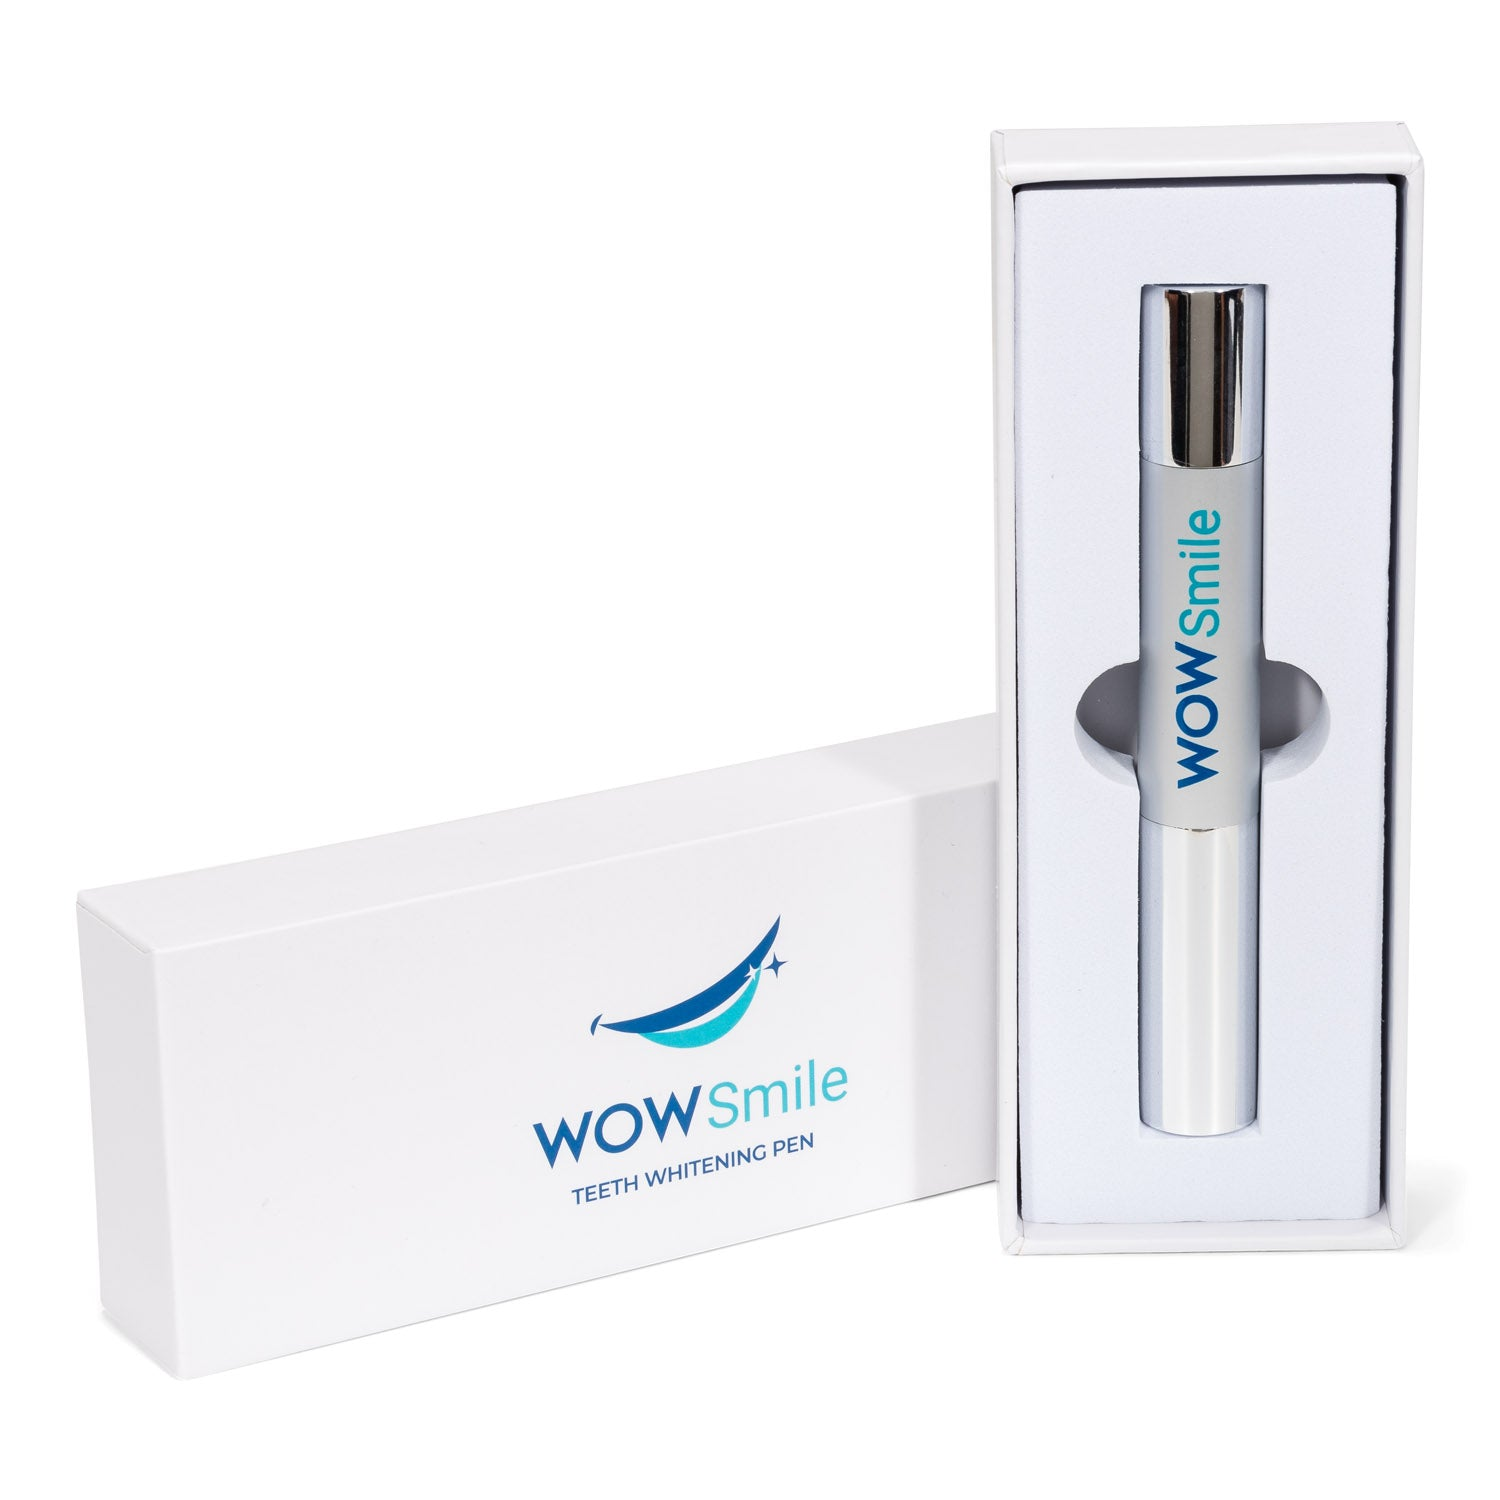 Whitening Kit & Whitening Pen